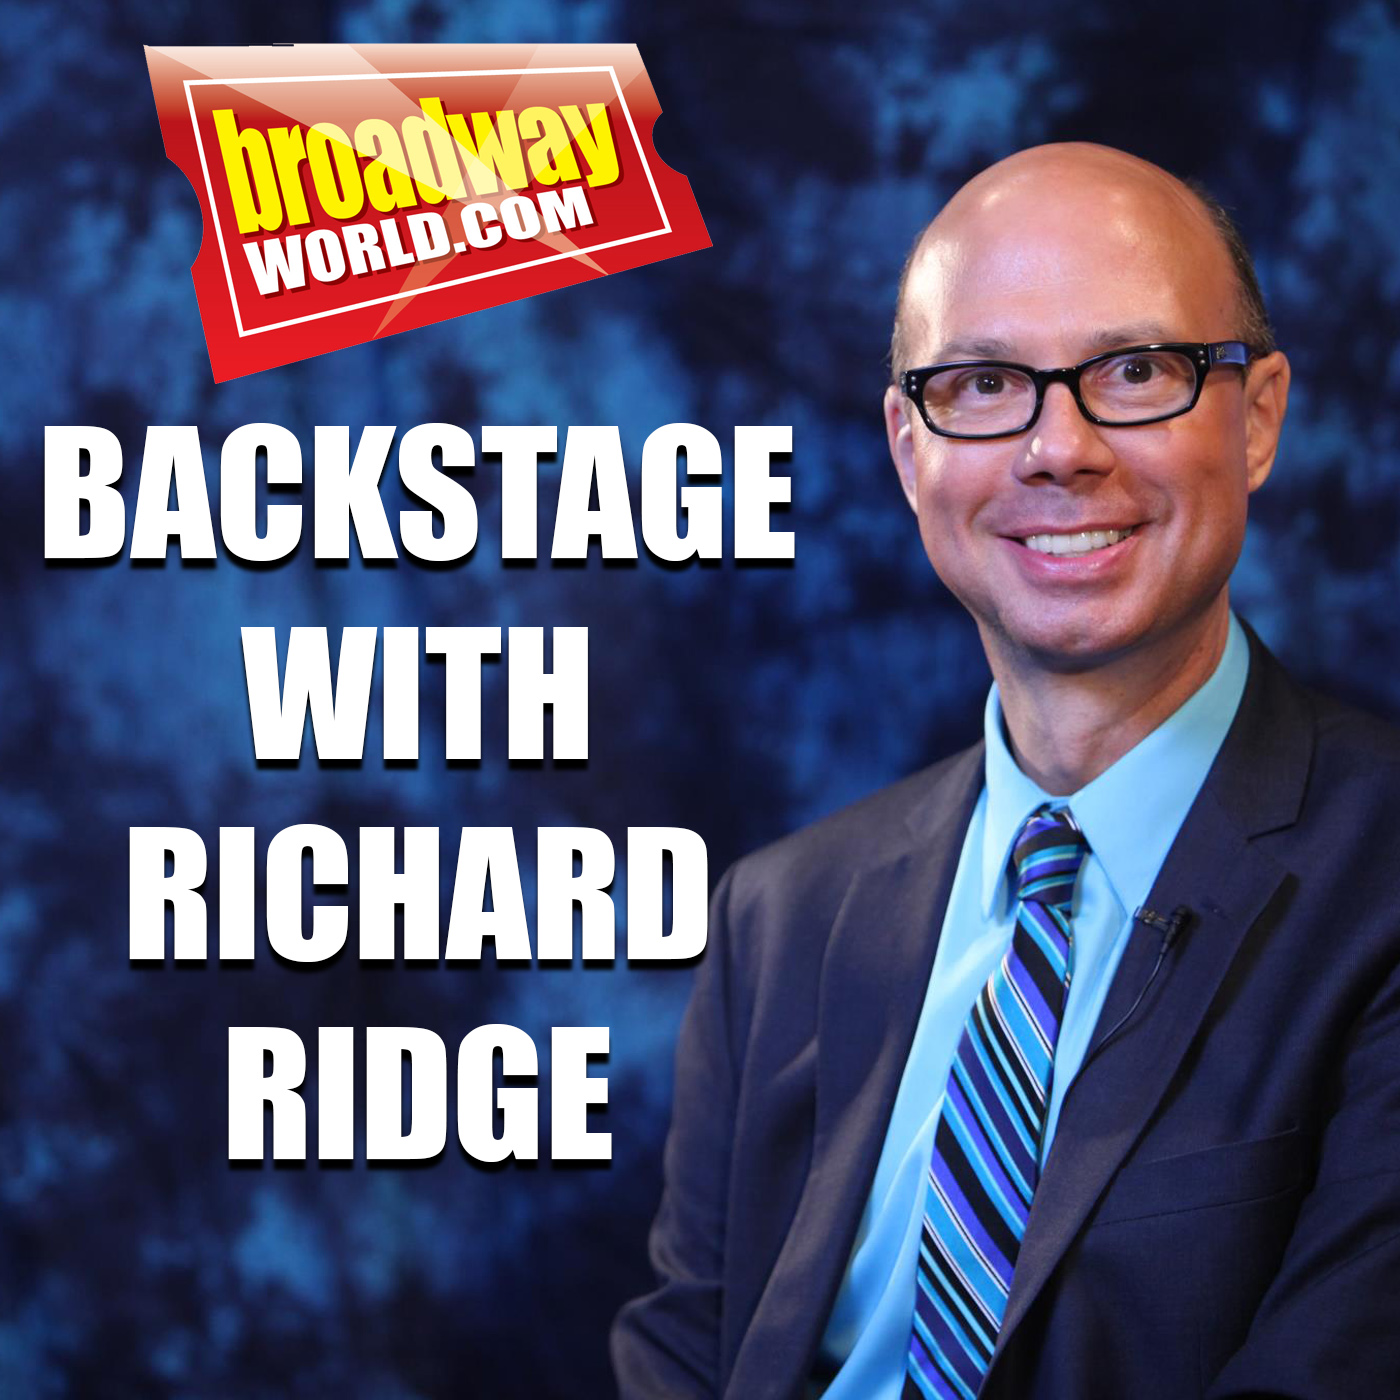 Backstage with Richard Ridge on BroadwayWorld.com